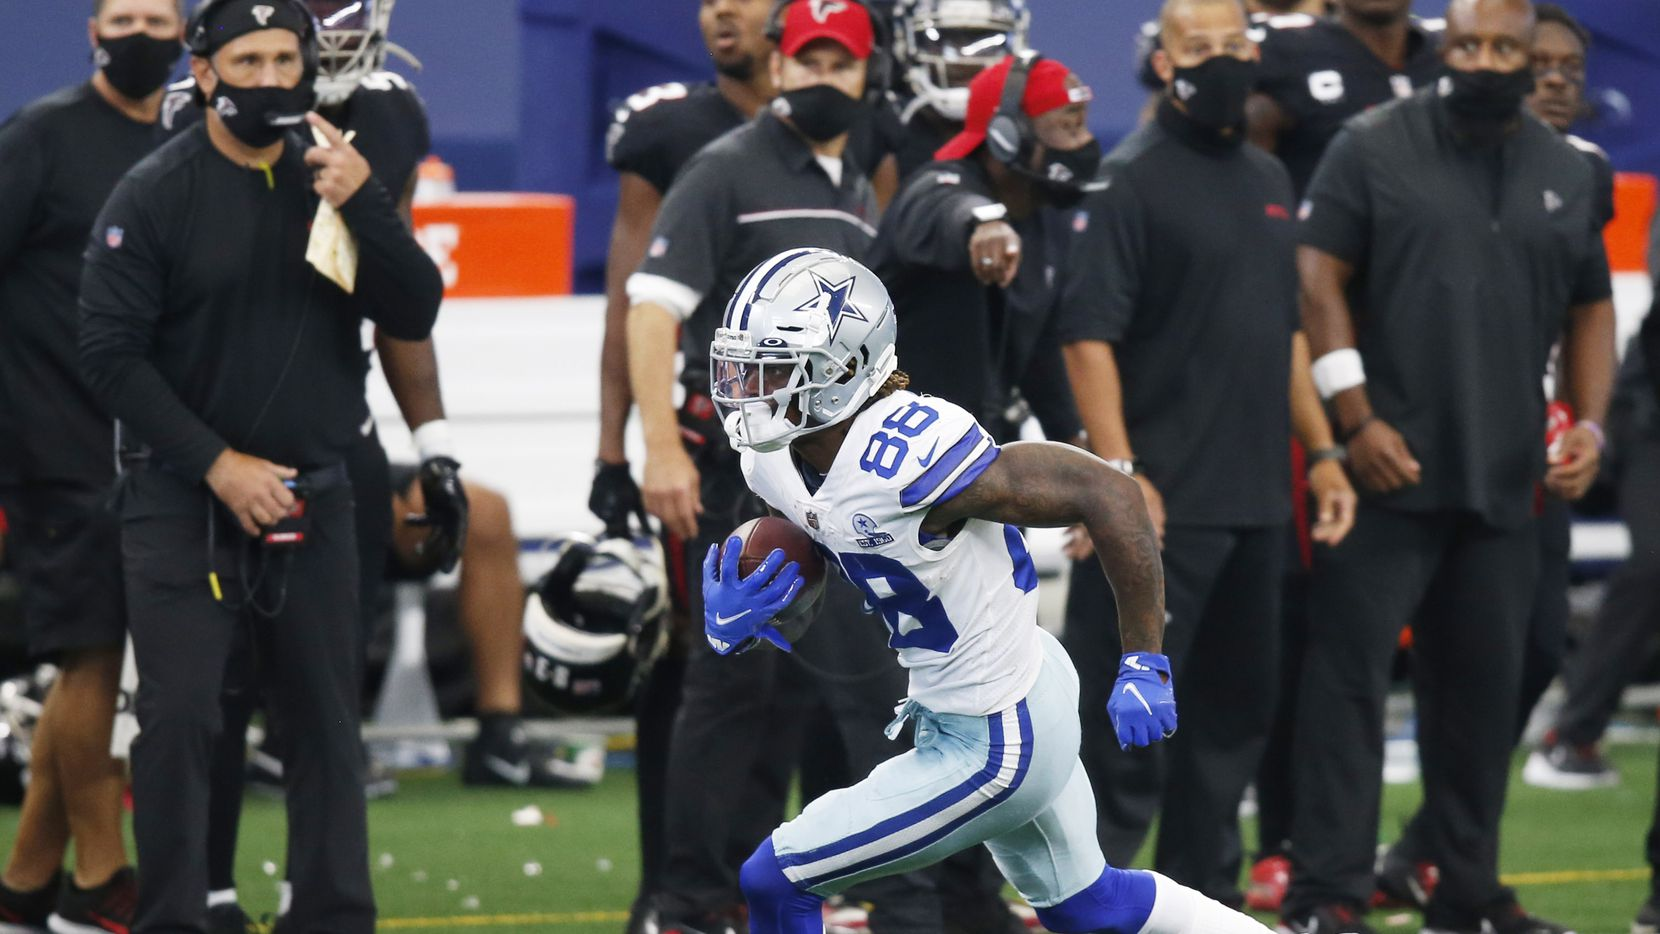 Dallas Cowboys wide receiver CeeDee Lamb (88) runs up the field after the catch on the final drive for the Cowboys in a game against the Atlanta Falcons during the fourth quarter of play at AT&T Stadium in Arlington, Texas on Sunday, September 20, 2020. Dallas Cowboys defeated the Atlanta Falcons 40-39.